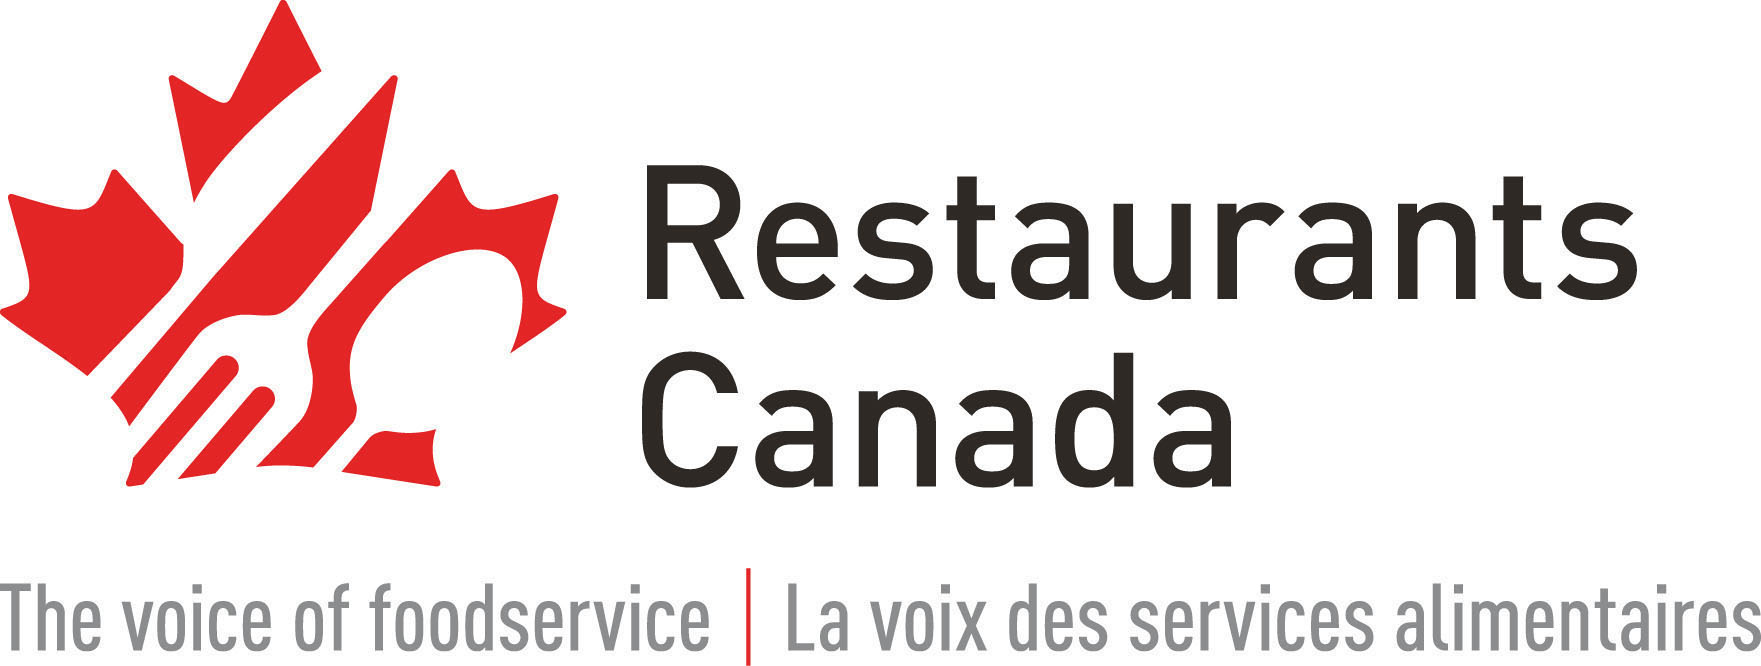 Quebec's restaurants need more working capital to successfully reopen